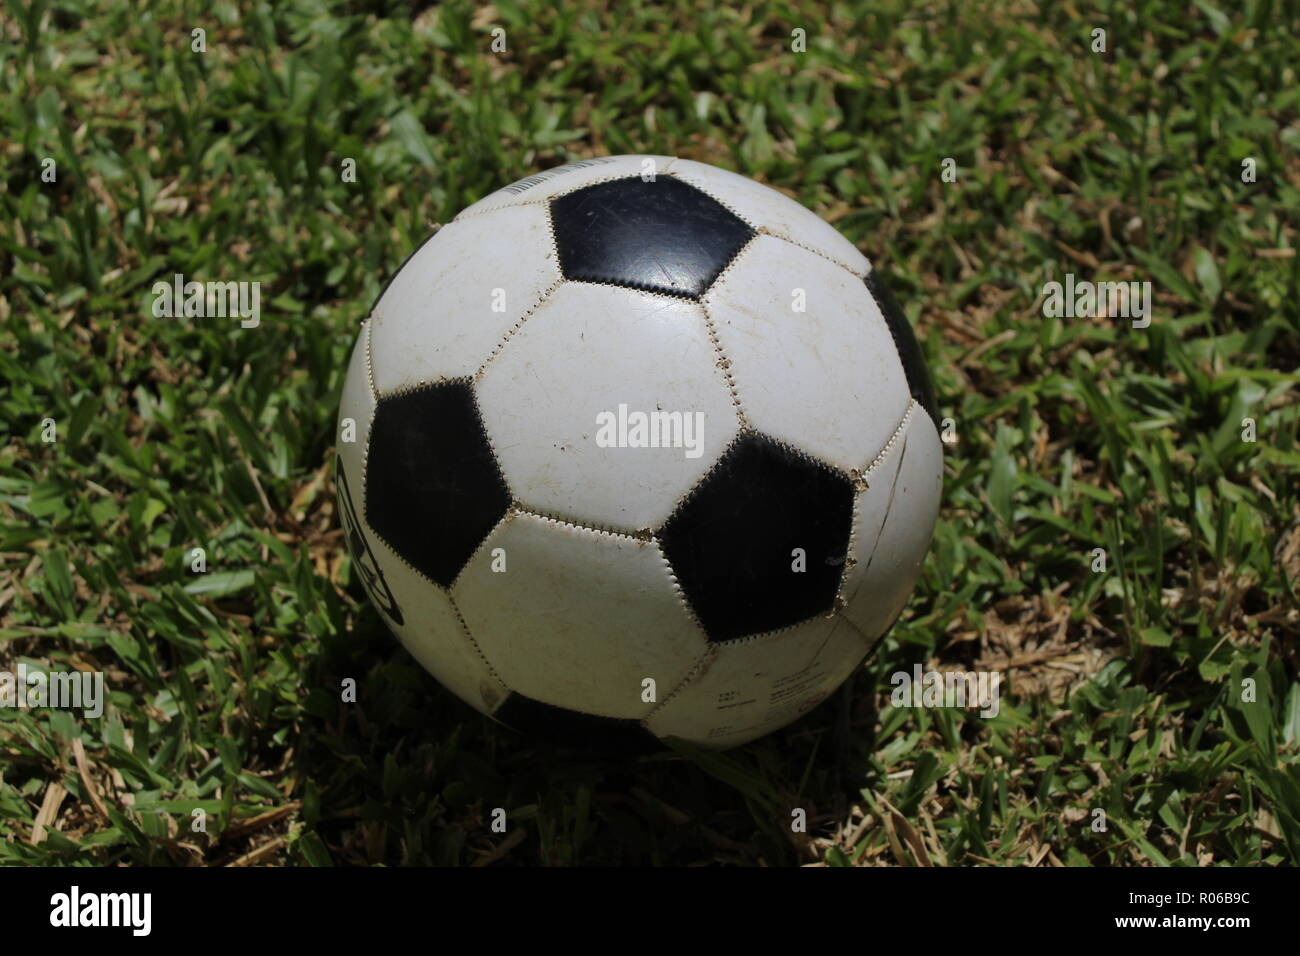 Worn ball on soccer field - Stock Image